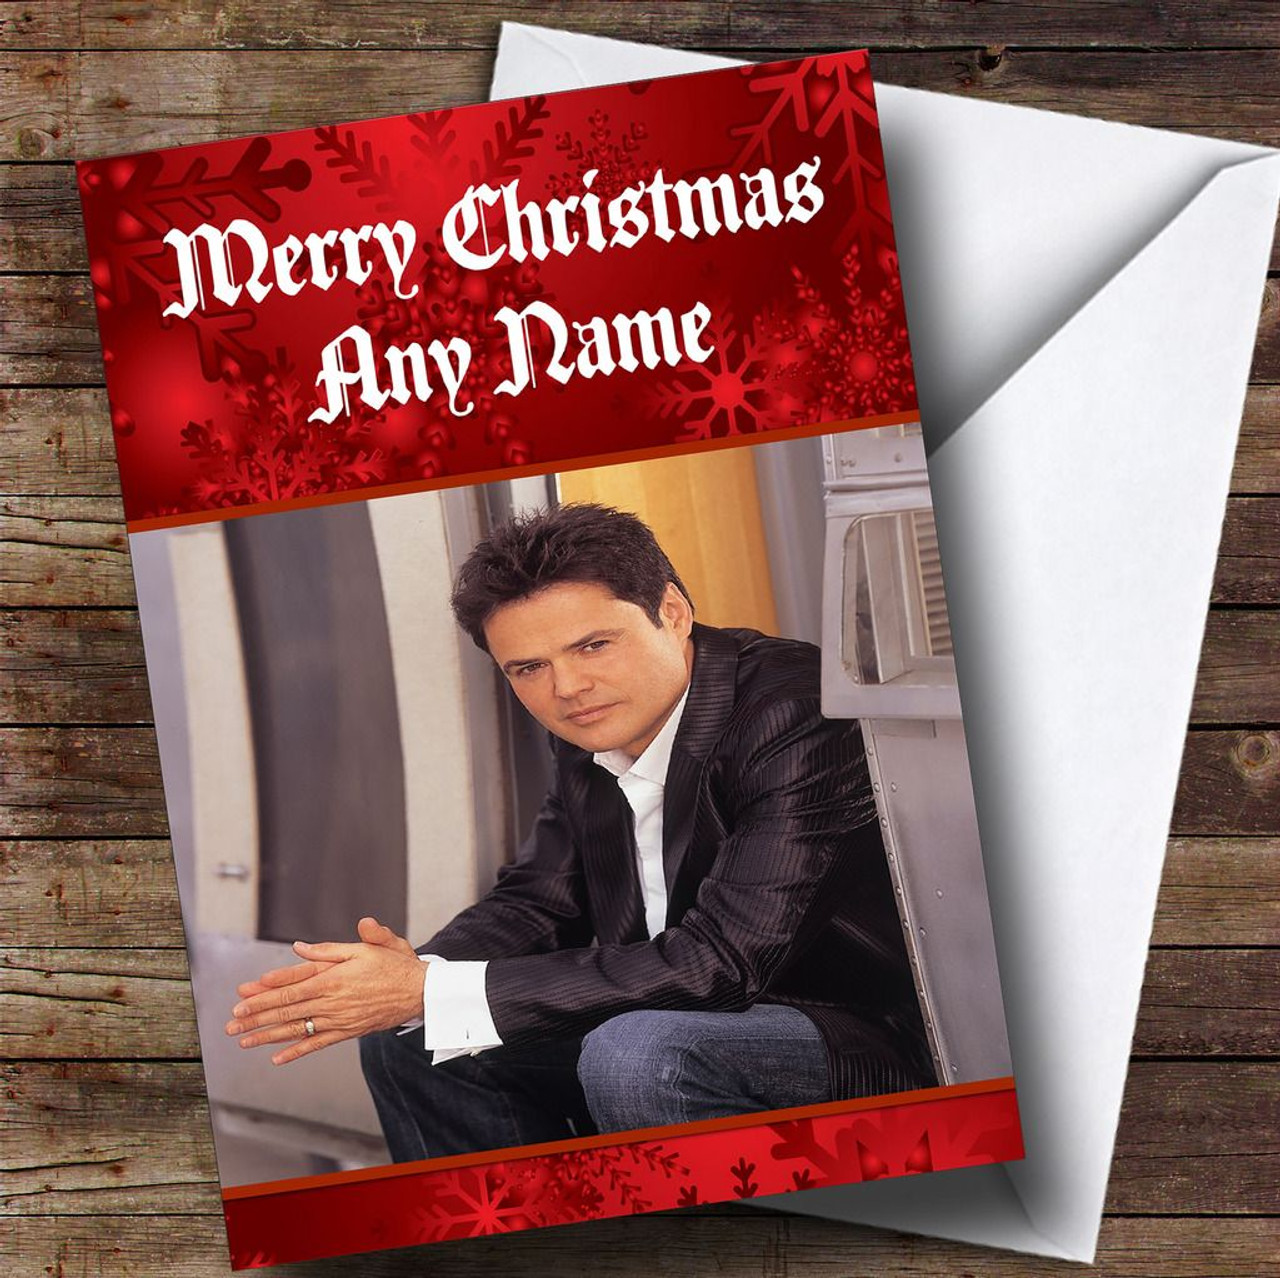 Donny Osmond Personalised Christmas Card